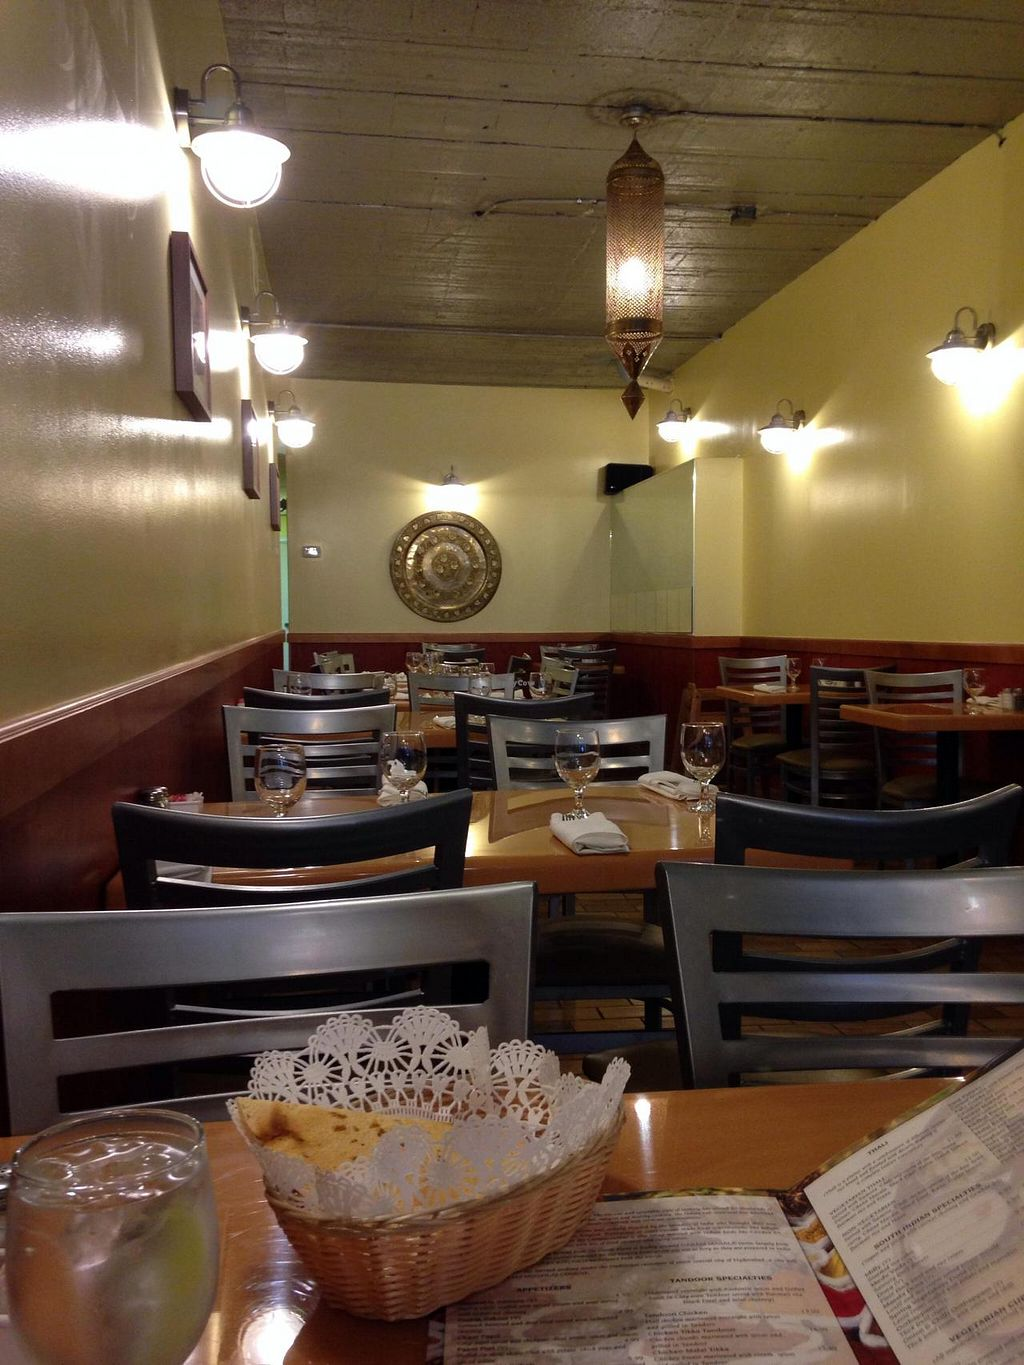 """Photo of Bethesda Curry Kitchen  by <a href=""""/members/profile/cookiem"""">cookiem</a> <br/>Decor <br/> April 25, 2014  - <a href='/contact/abuse/image/46751/68578'>Report</a>"""